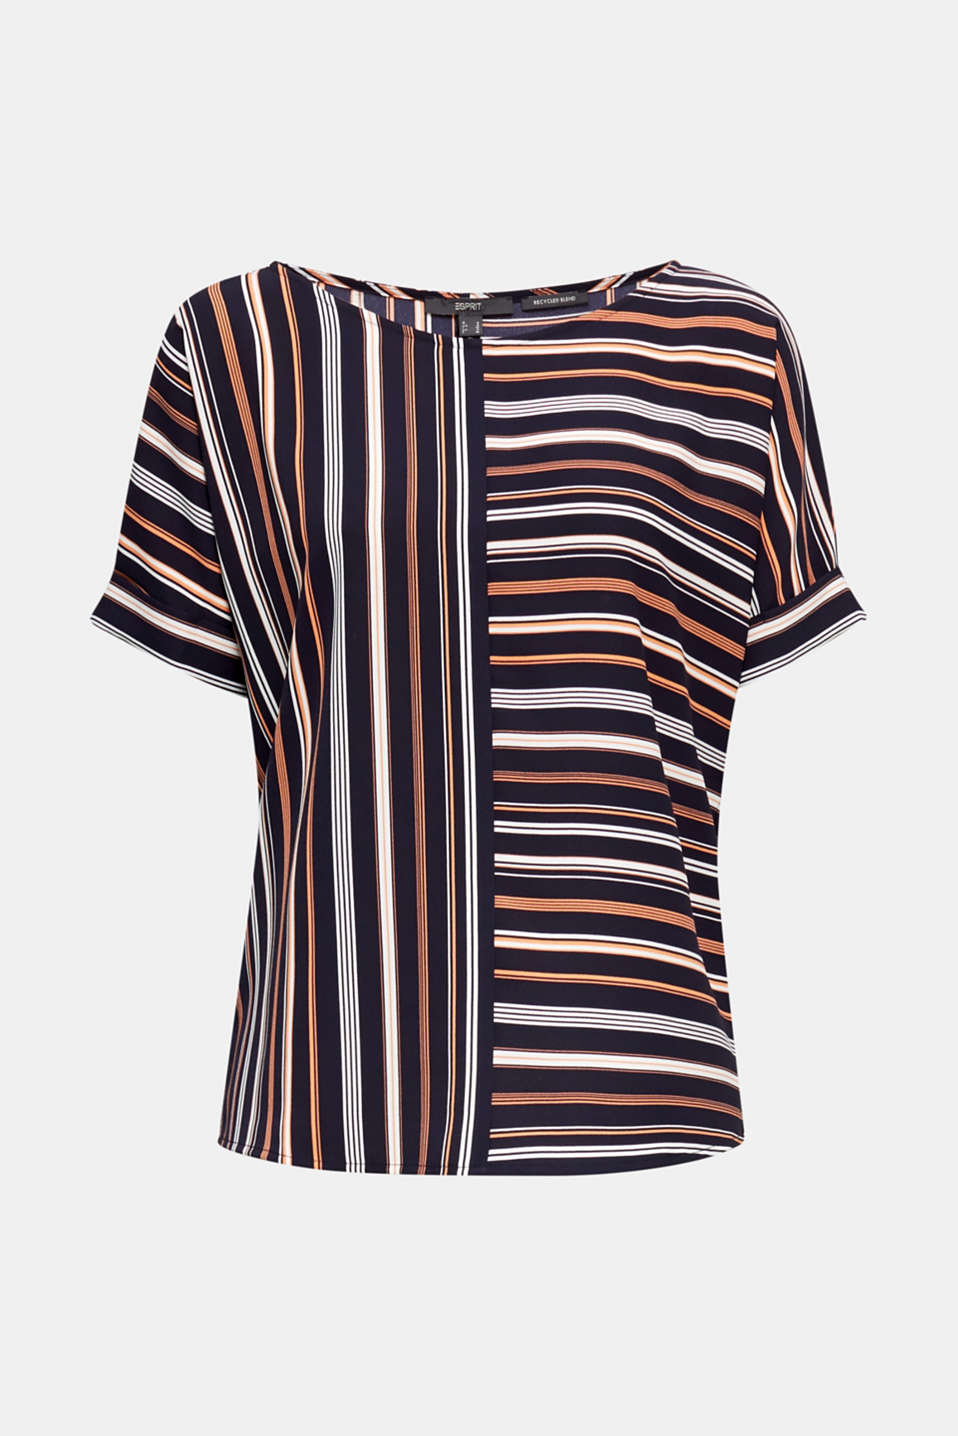 Striped blouse, recycled, NAVY 2, detail image number 7